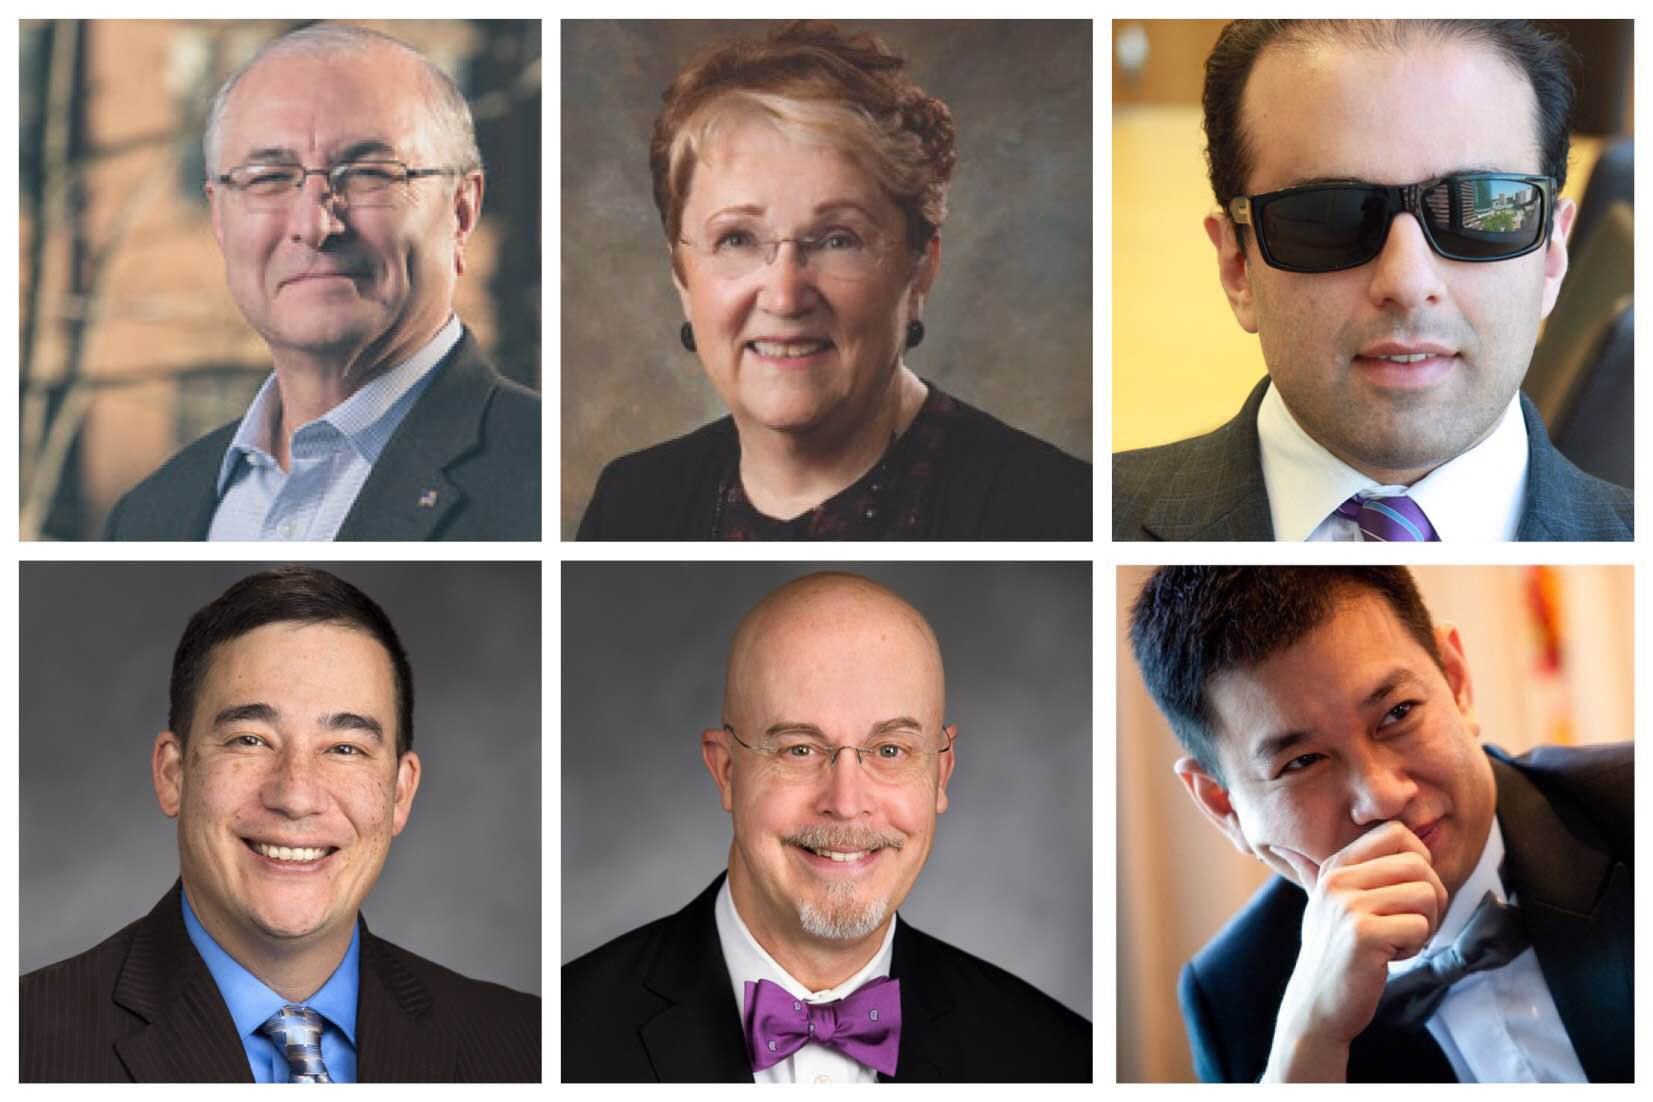 The six leading candidates for Lieutenant Governor (left to right): Javier Figueroa, Karen Fraser, Cyrus Habib, Steve Hobbs, Jim Moeller and Phillip Yin. (Courtesy photos.)